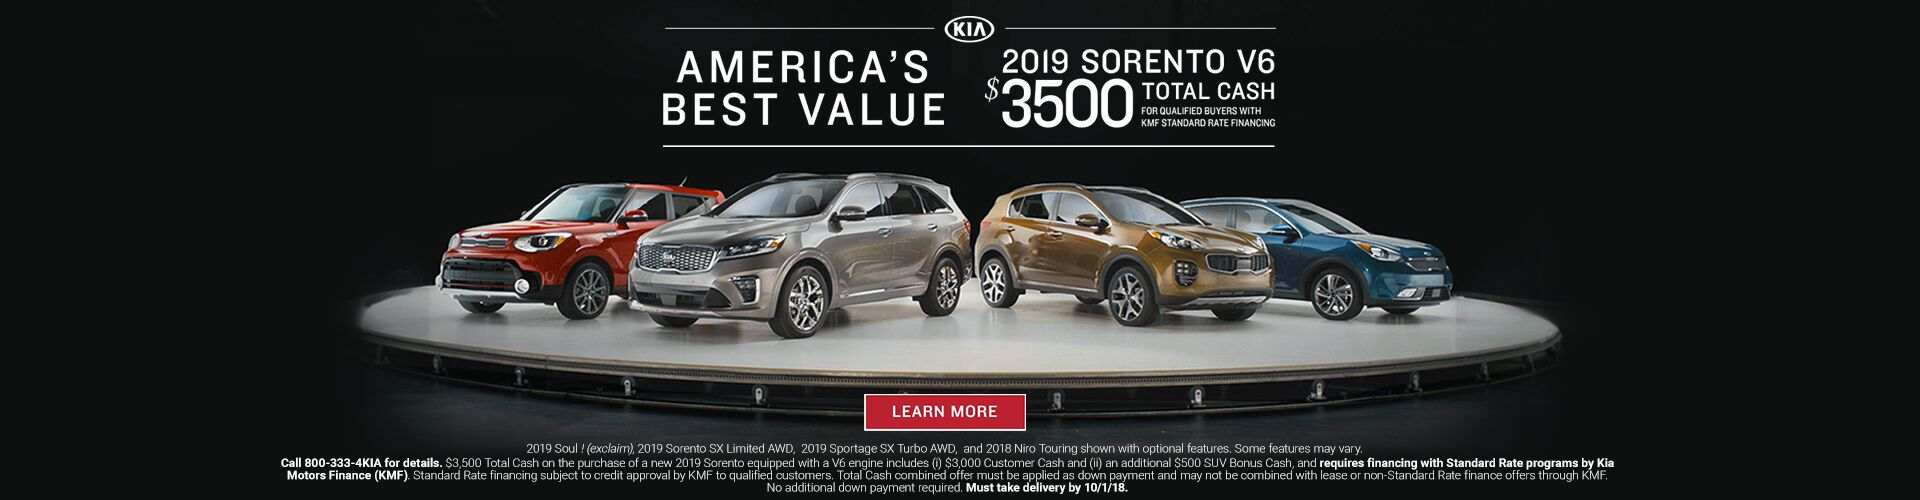 America's Best Value 2019 Sorento Fuccillo Kia of Cape Coral